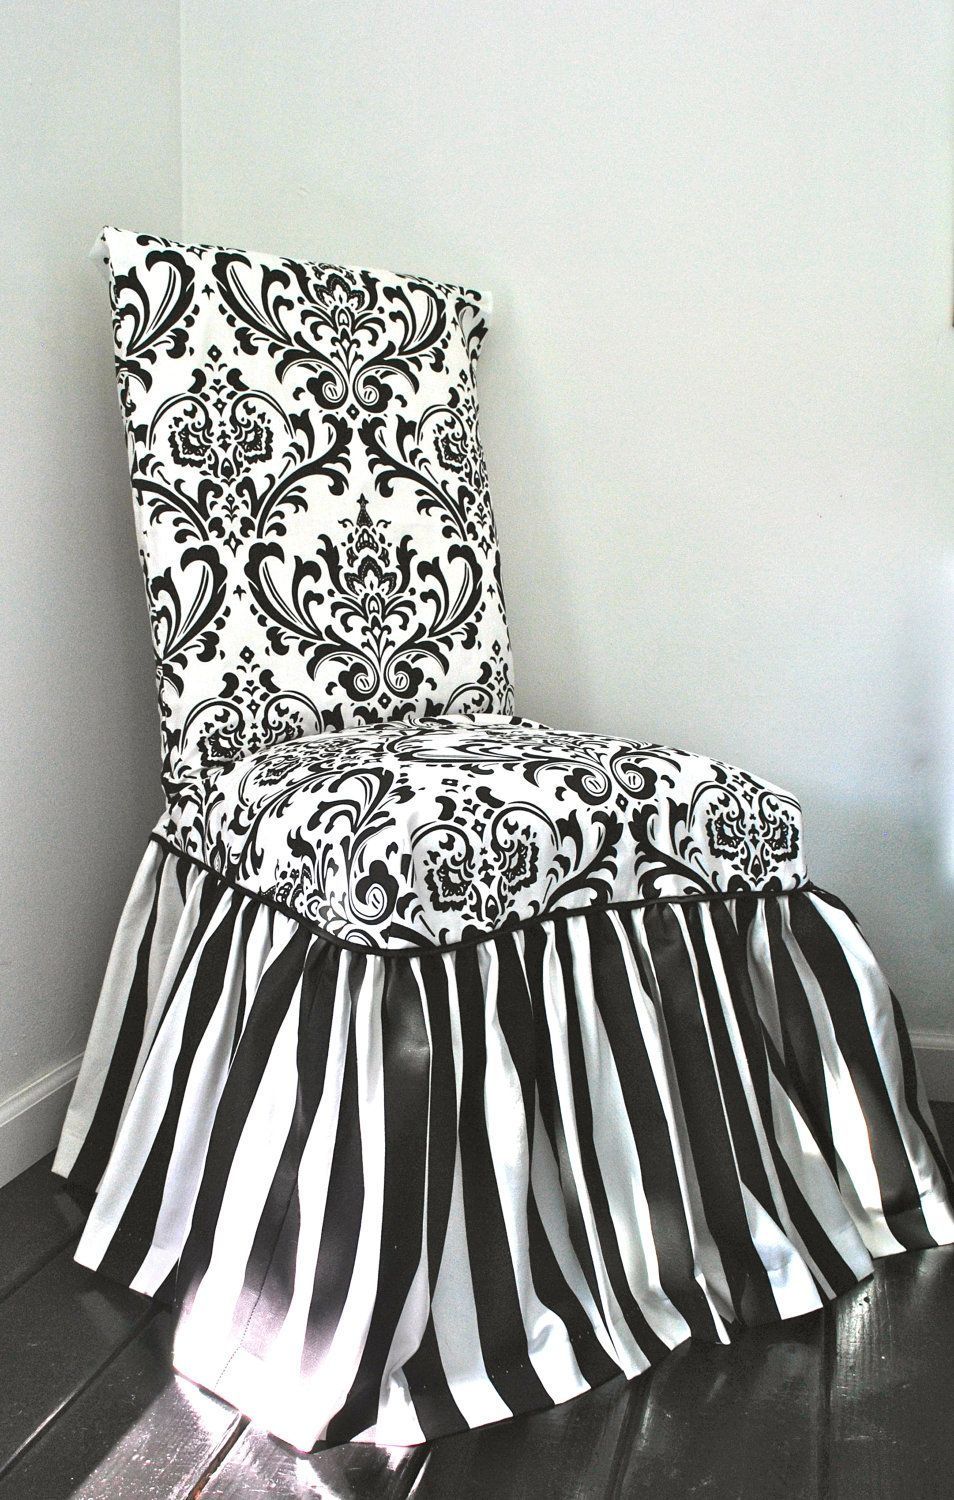 Damask And Stripe Chair Slipcover Slipcovers Diy Tutorials Too Slipcovers For Chairs Striped Chair Slipcovers